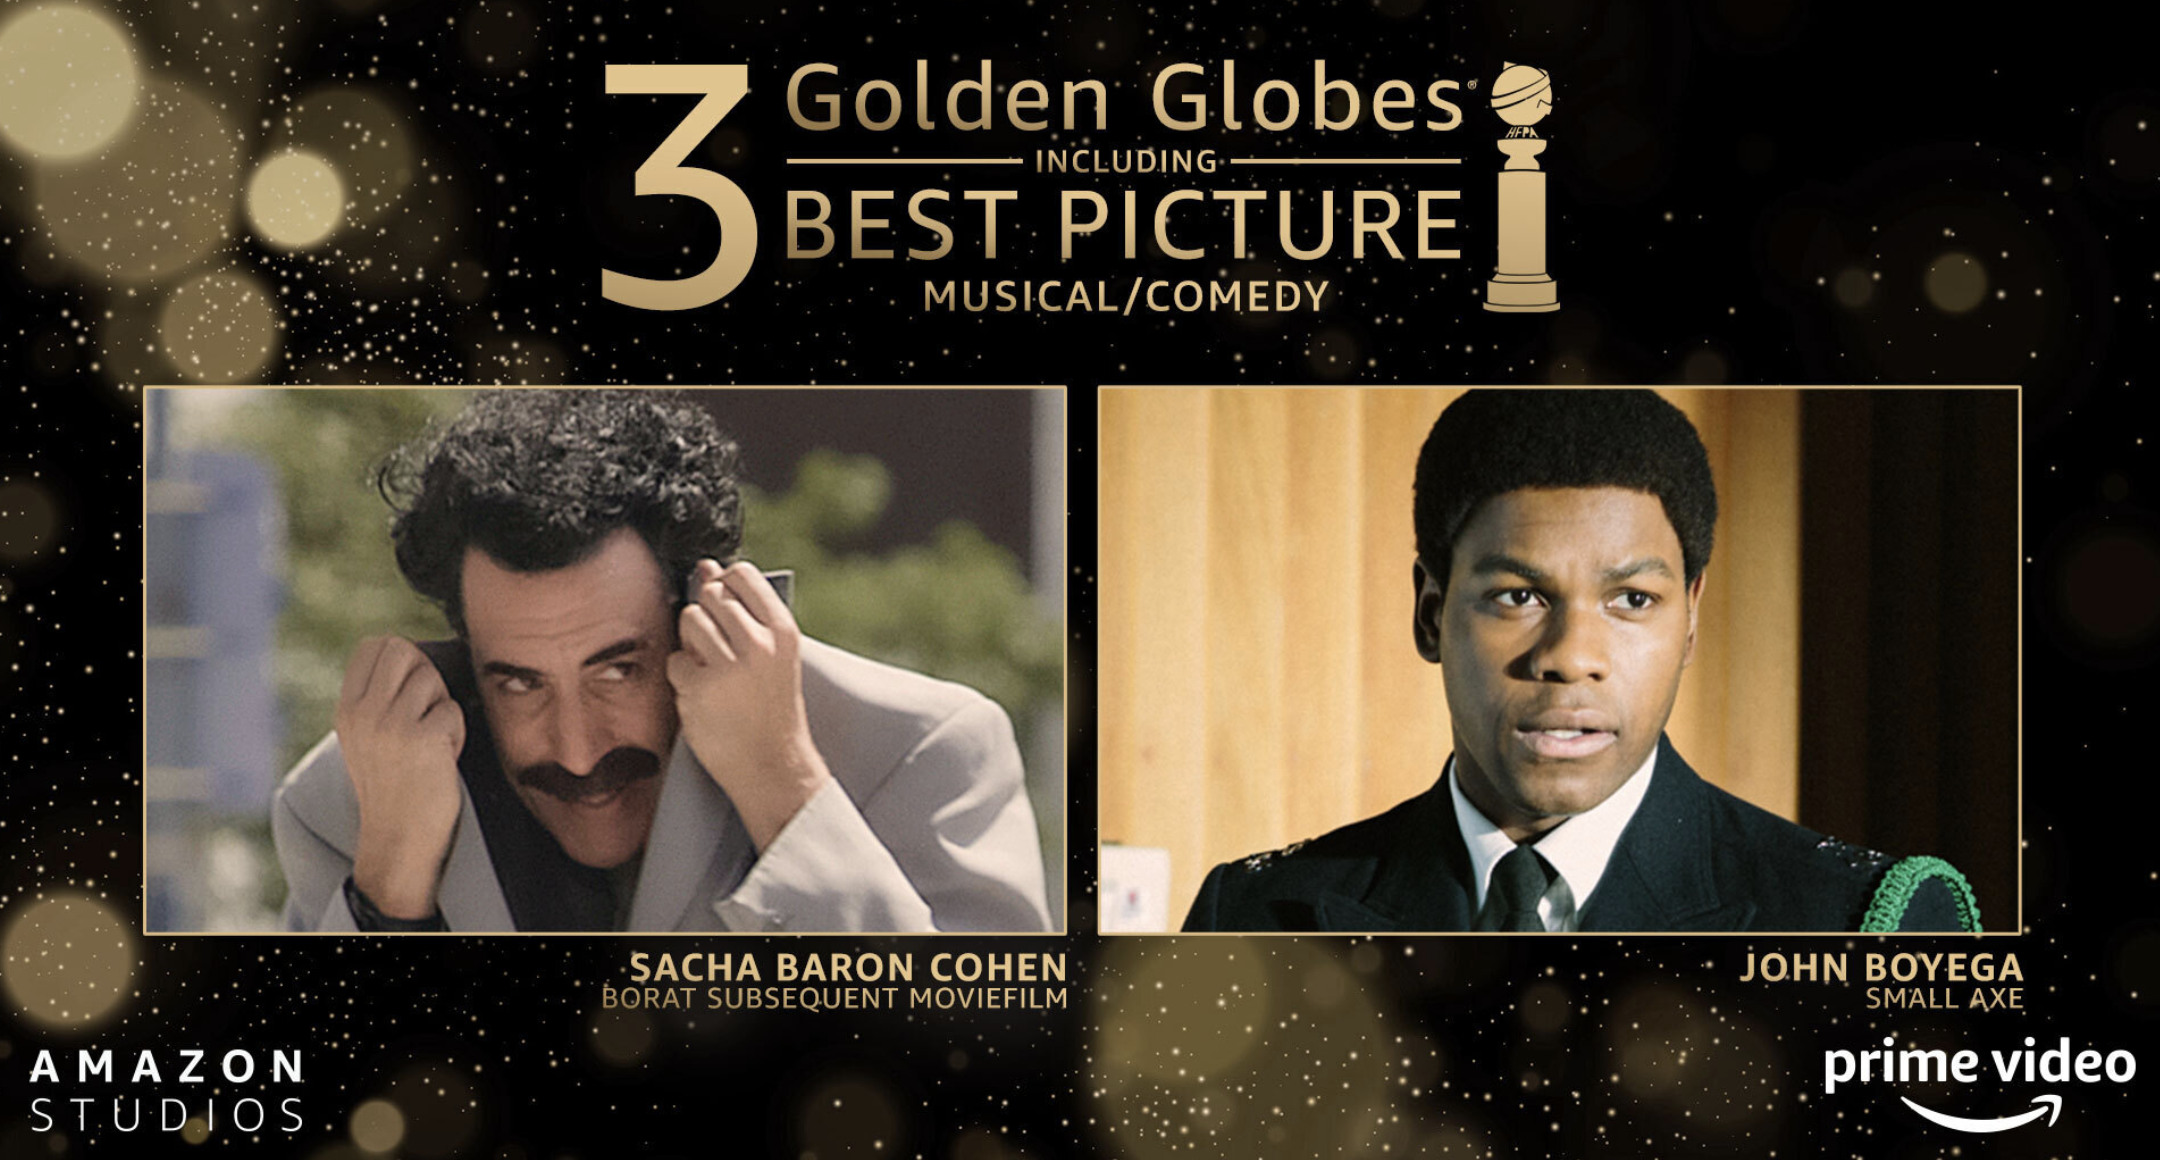 Amazon takes 3 Golden Globes, including big 'Borat' win, as annual event goes mostly virtual